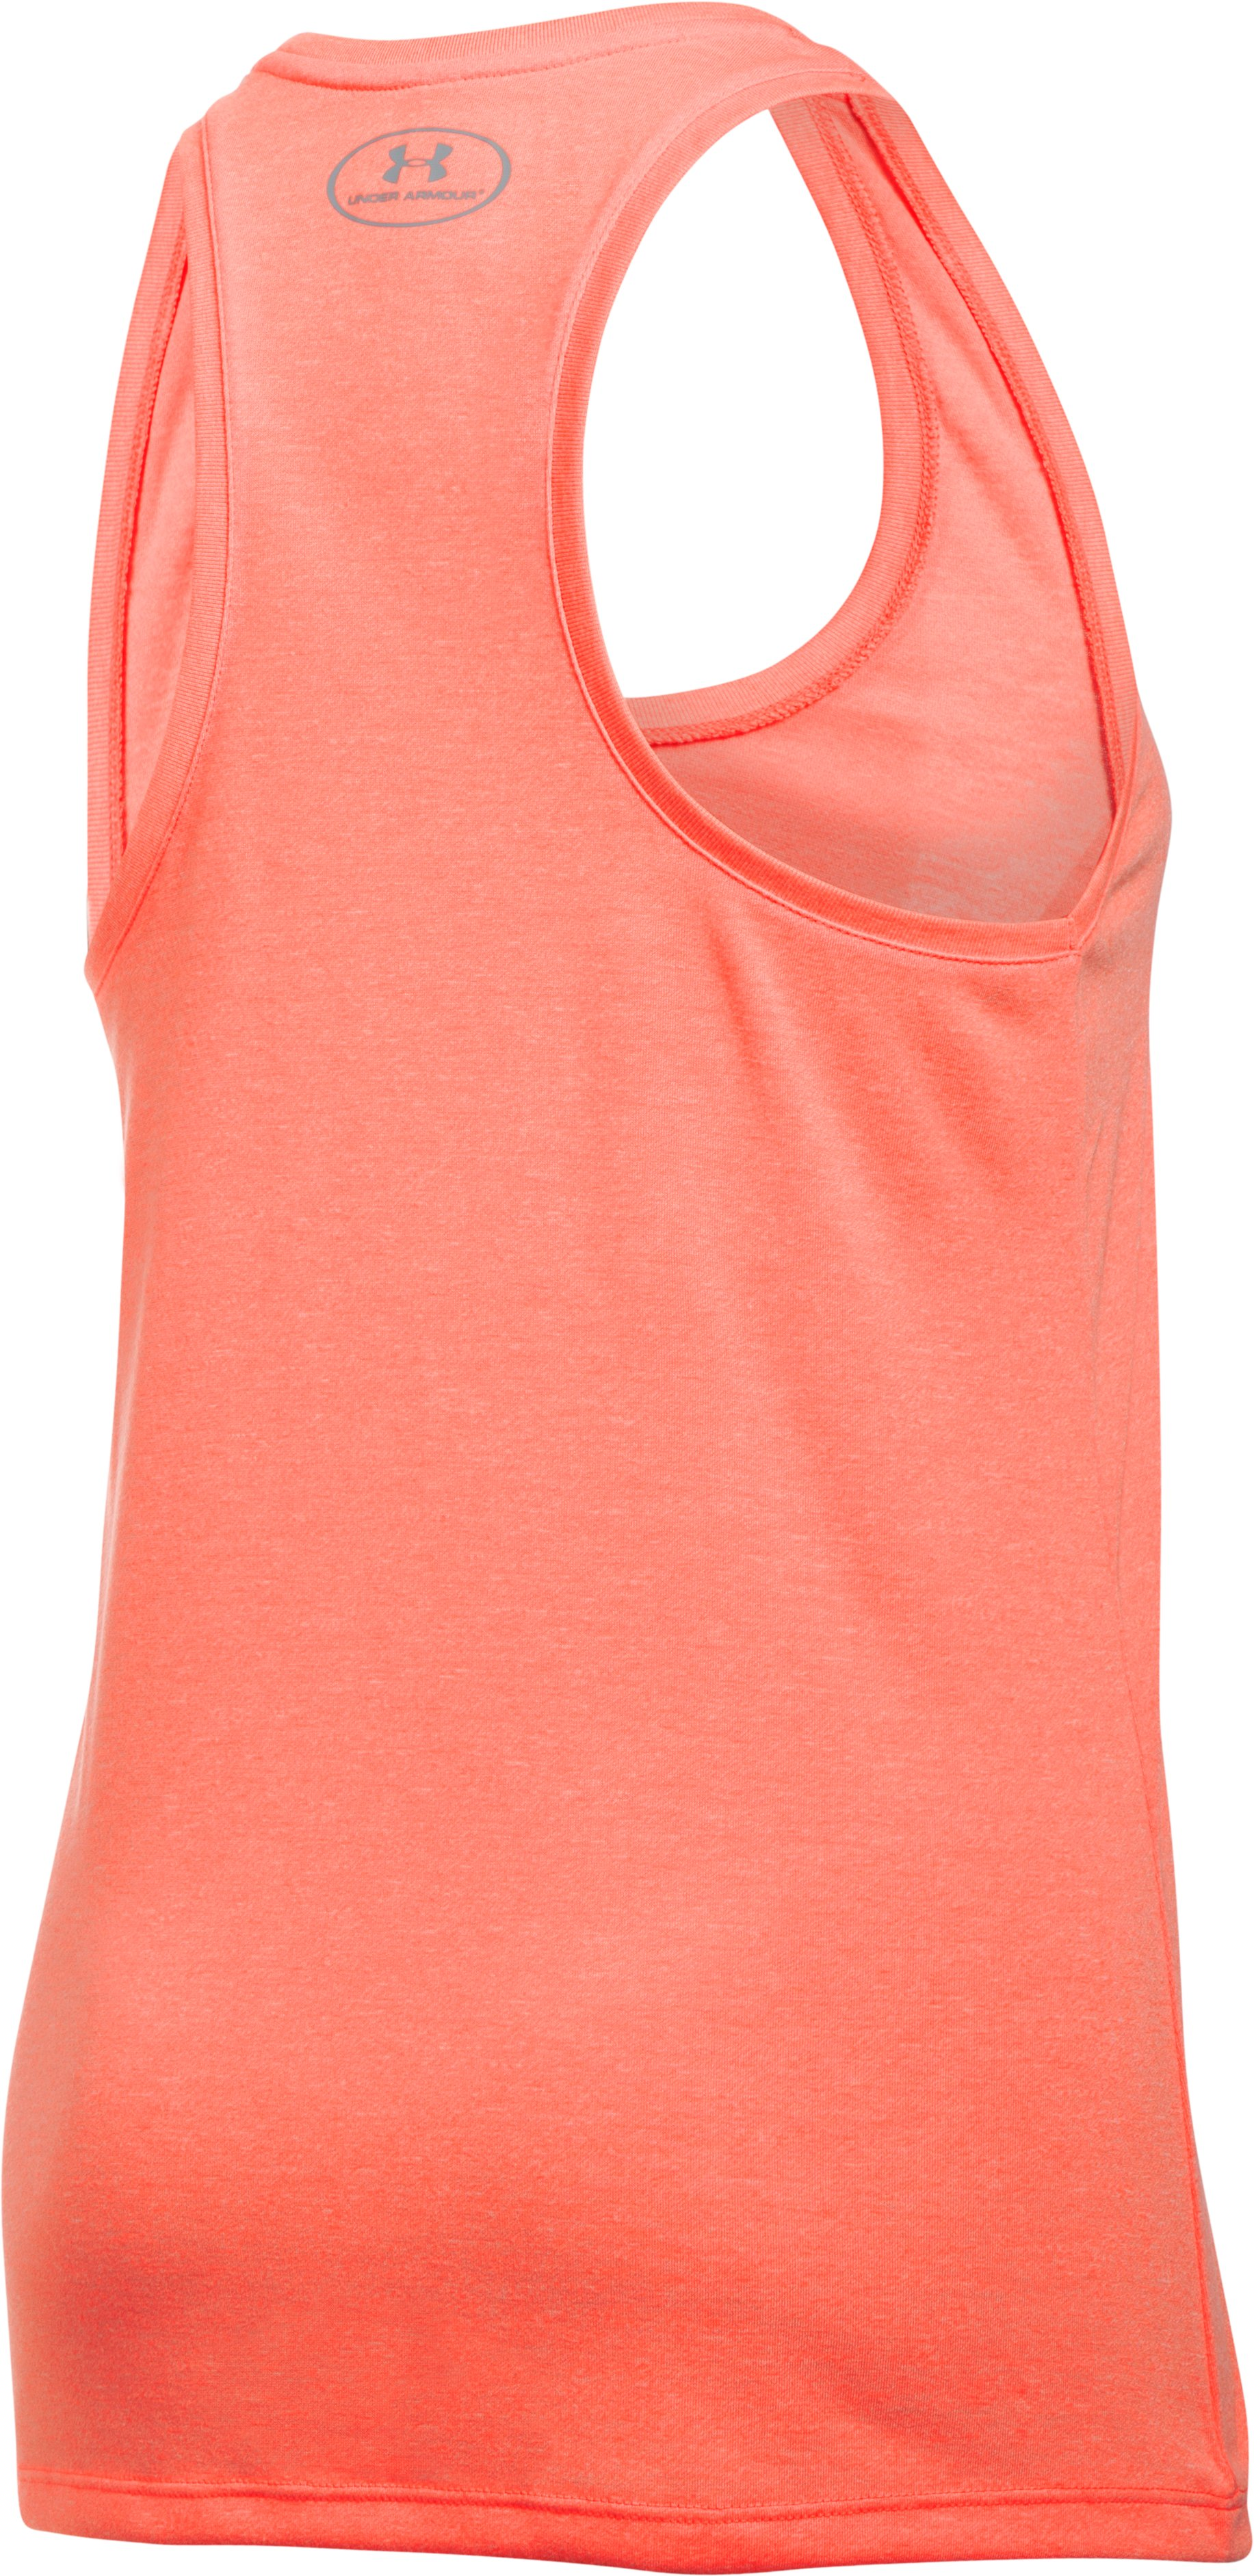 Women's UA Threadborne Train Wordmark Tank -Twist, LONDON ORANGE, undefined